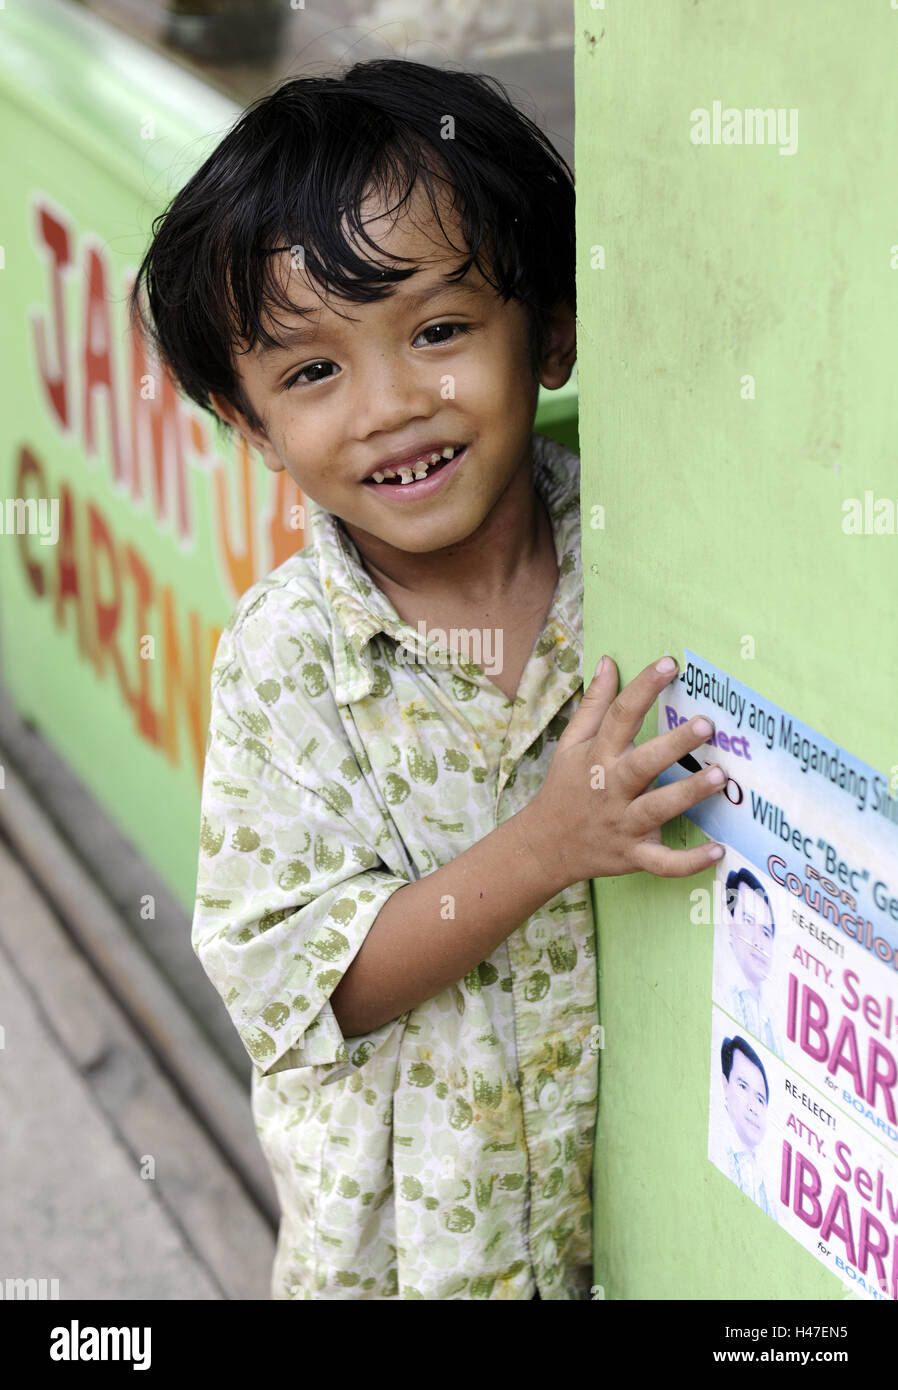 The Philippines, boy, cogs, boy, person, child, tooth gaps, laugh, happy, hand, wall, Asian, portrait, Asia, - Stock Image